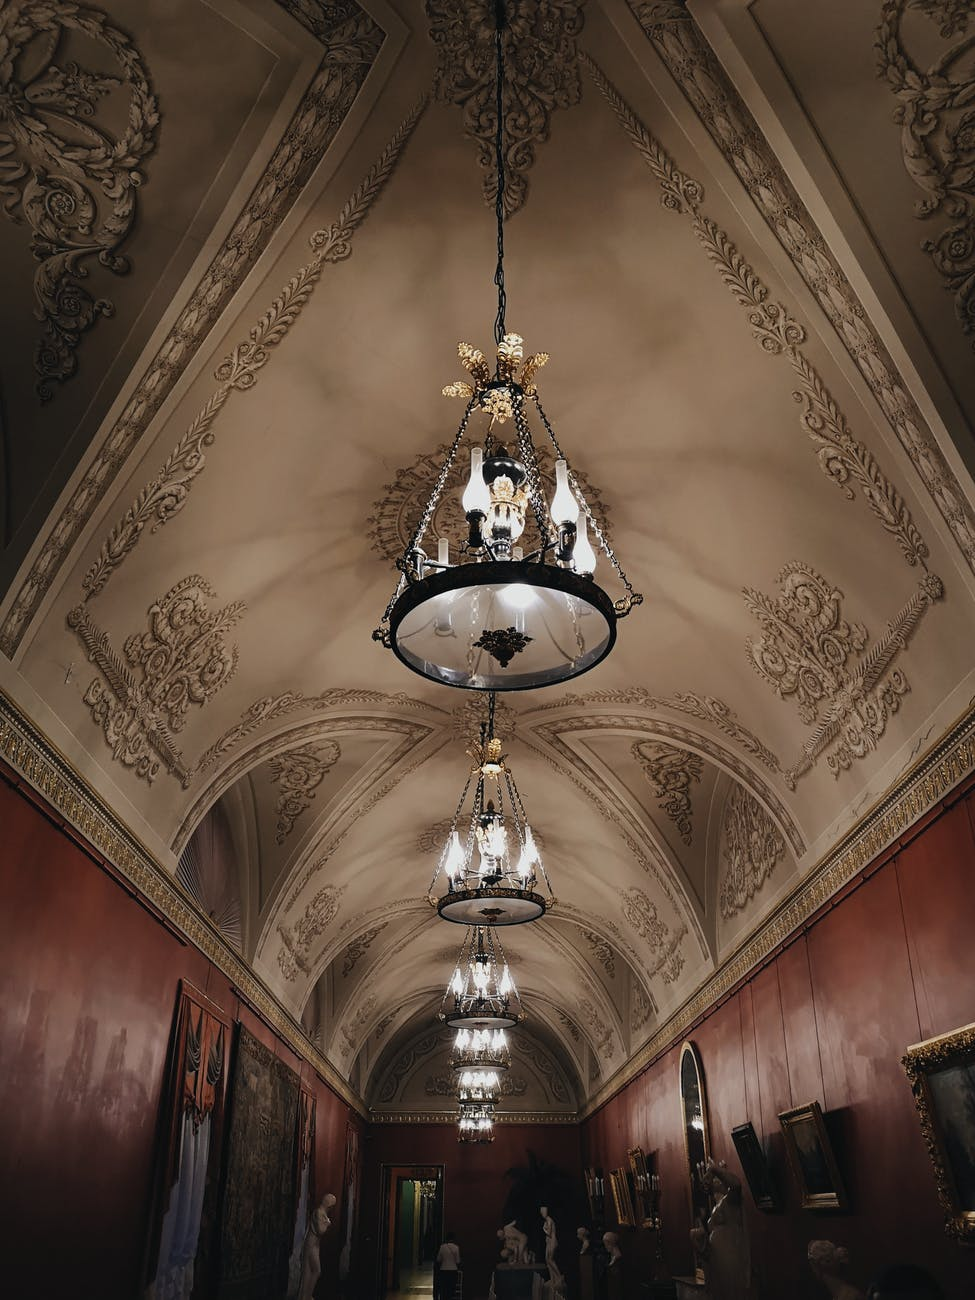 ballroom ceiling with chandeliers in a row